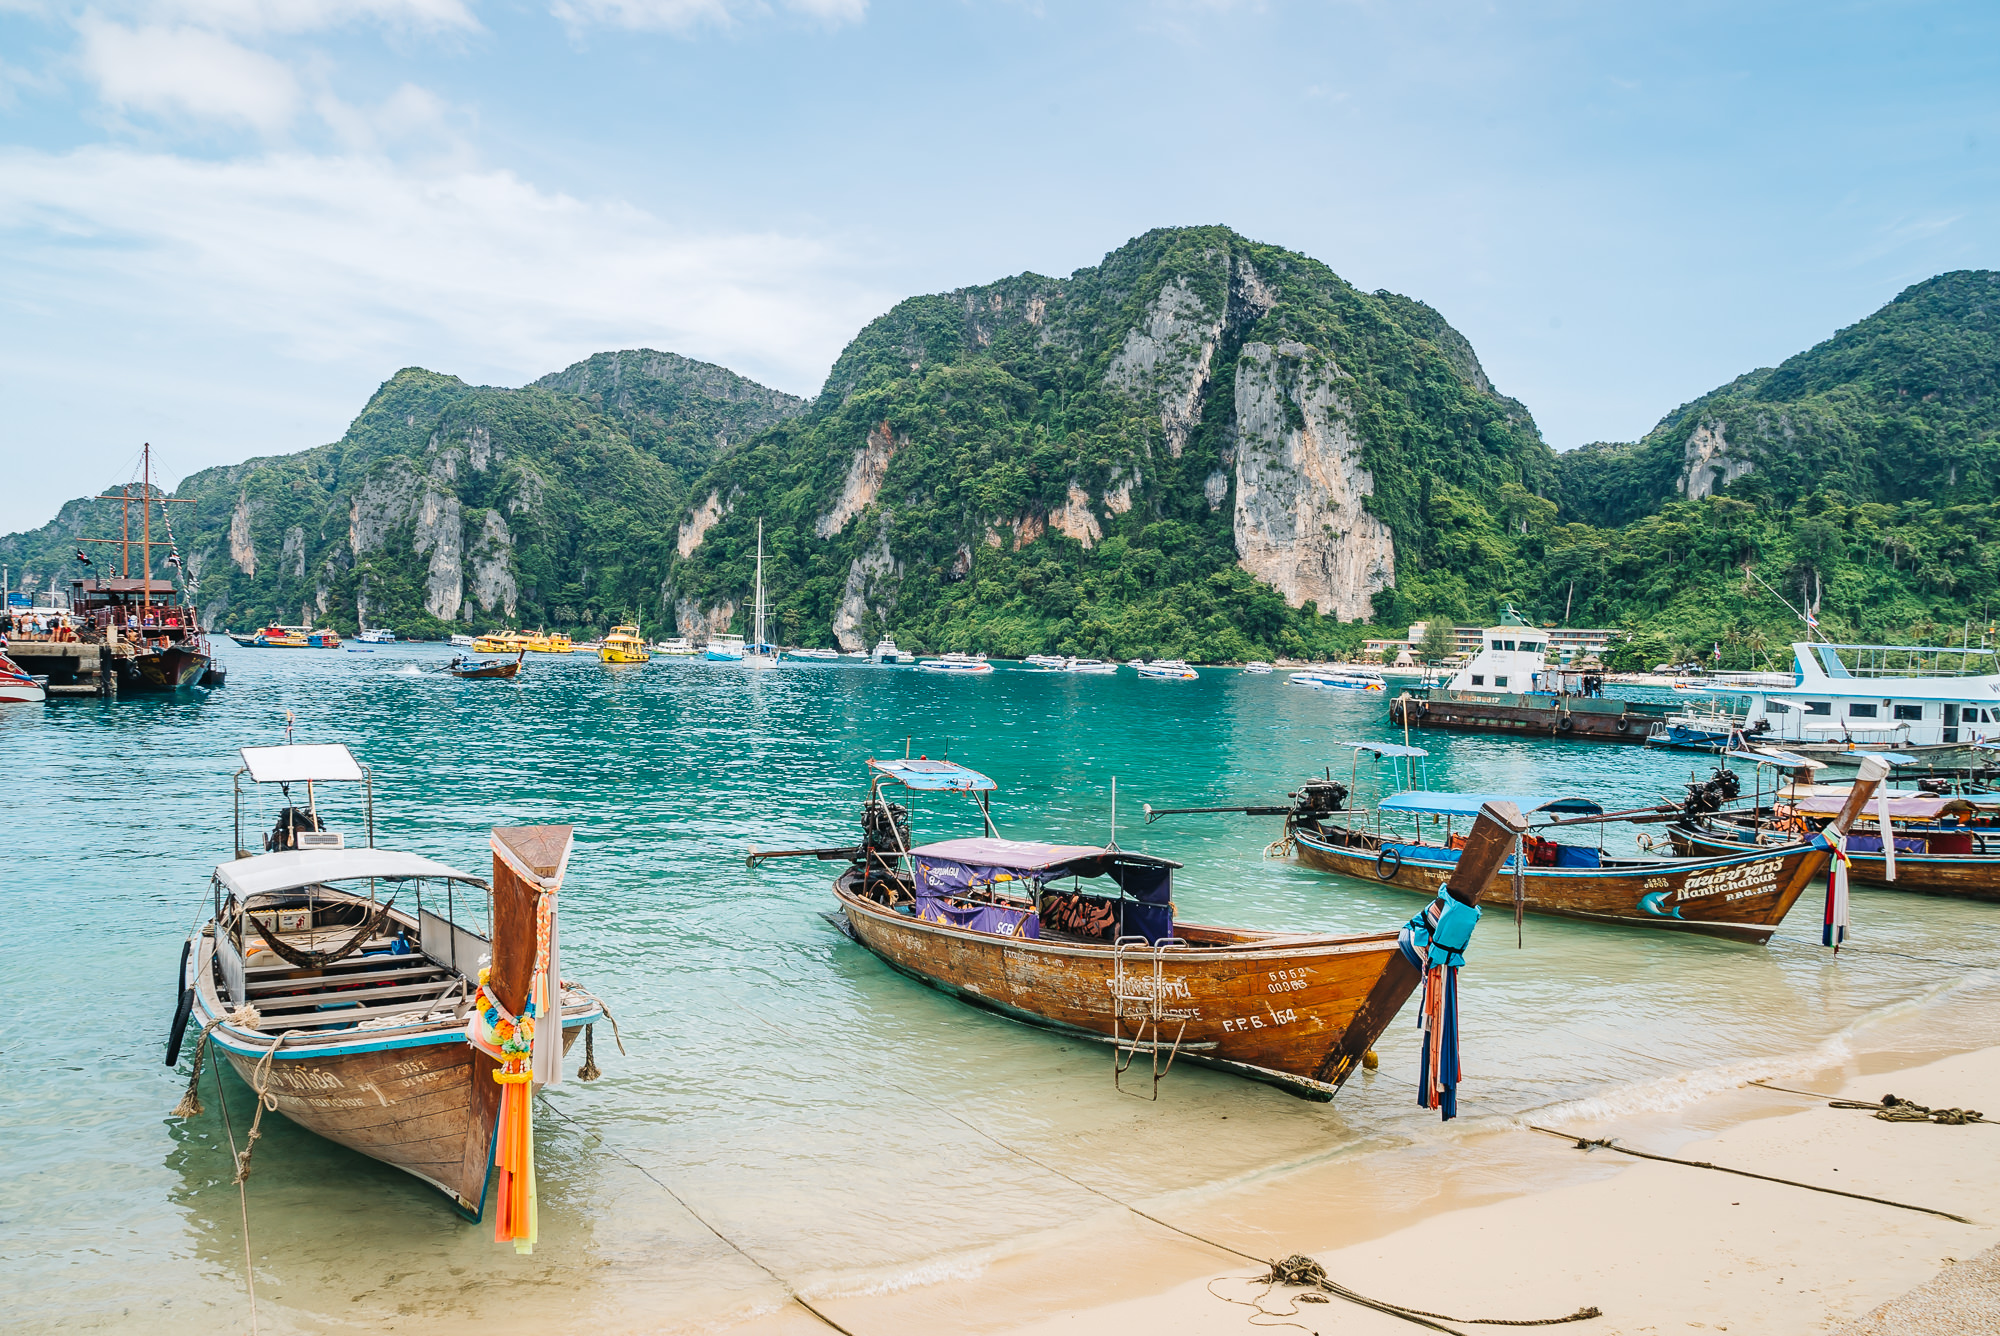 CLASSIC THAI BOATS OF PHI PHI ISLANDS